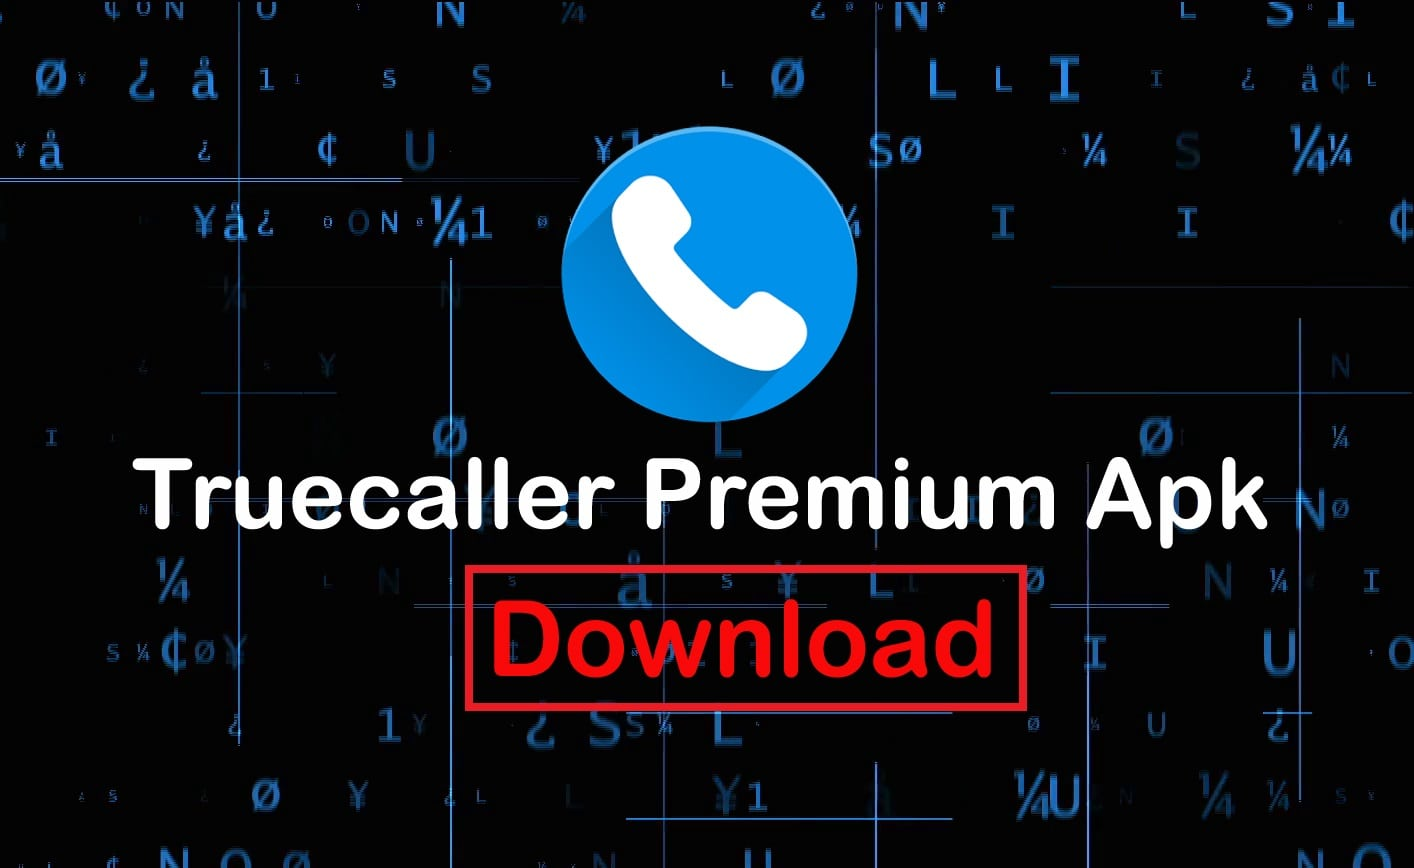 Truecaller Premium Apk - Download Latest Version 10 25 5